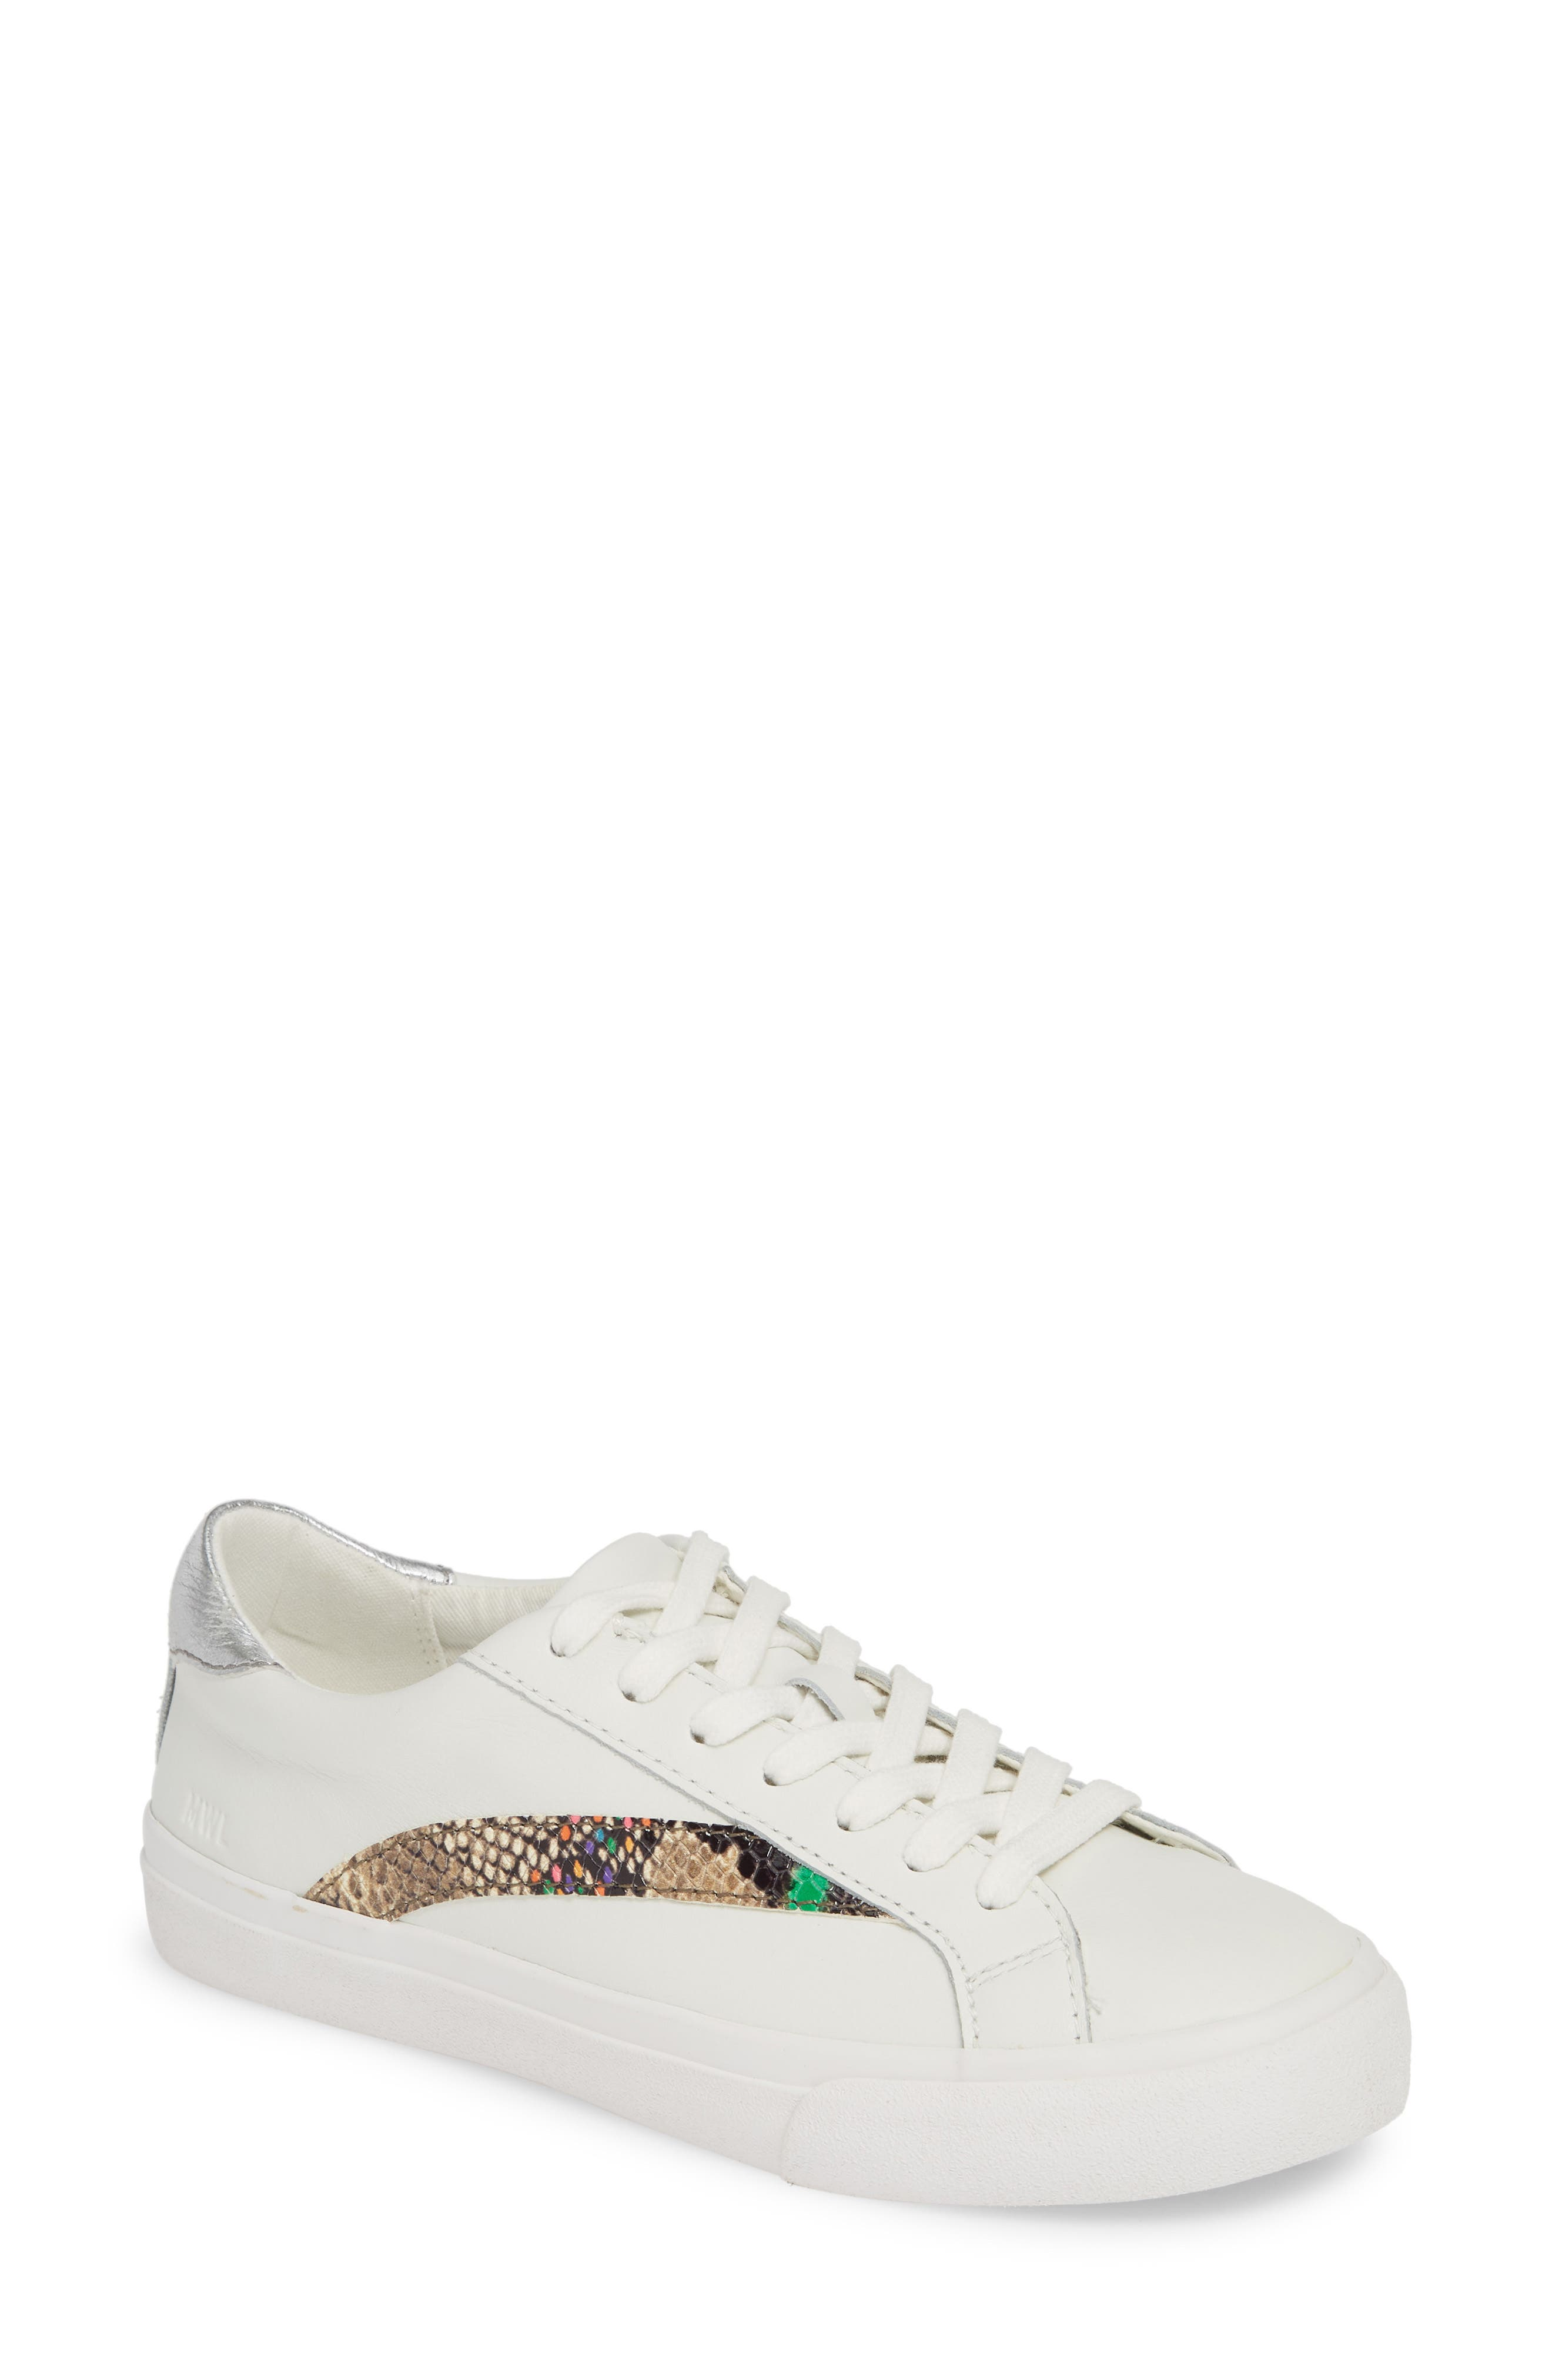 MADEWELL, Delia Sneaker, Main thumbnail 1, color, LIGHT UMBER MULTI